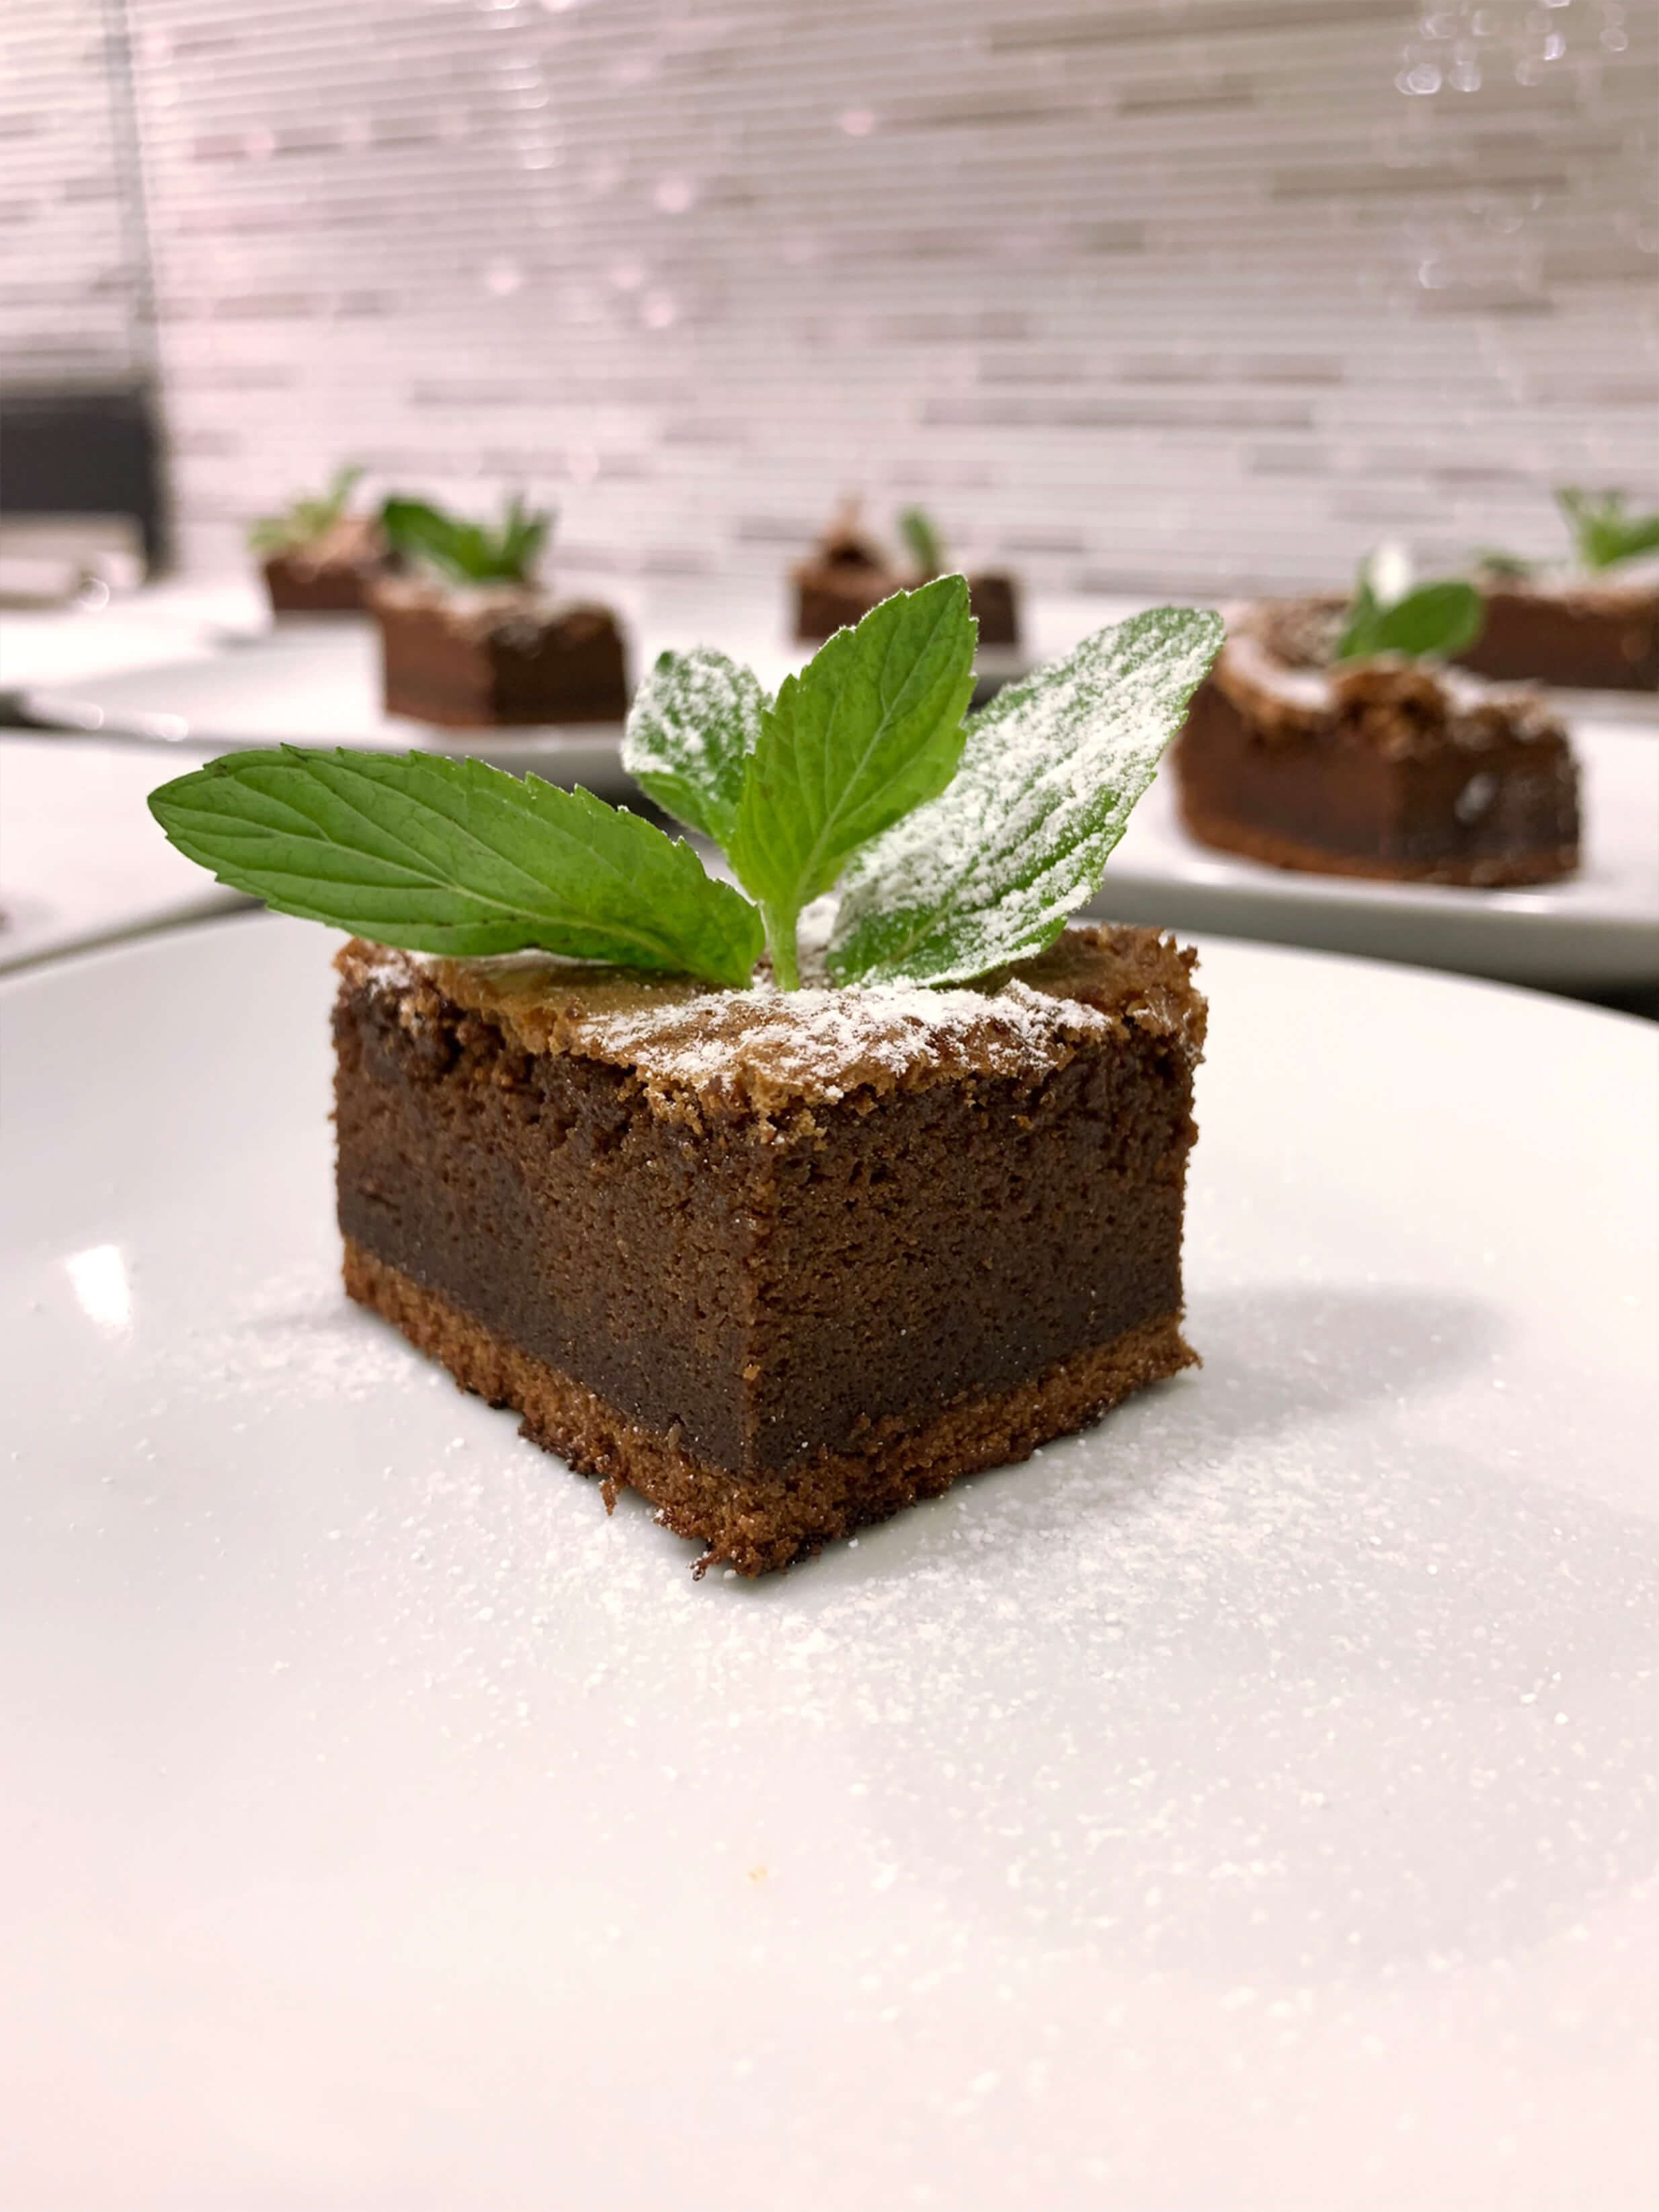 Chocolate brownie with mint leaf decoration, by UXATA Chef at home Riviera Maya.